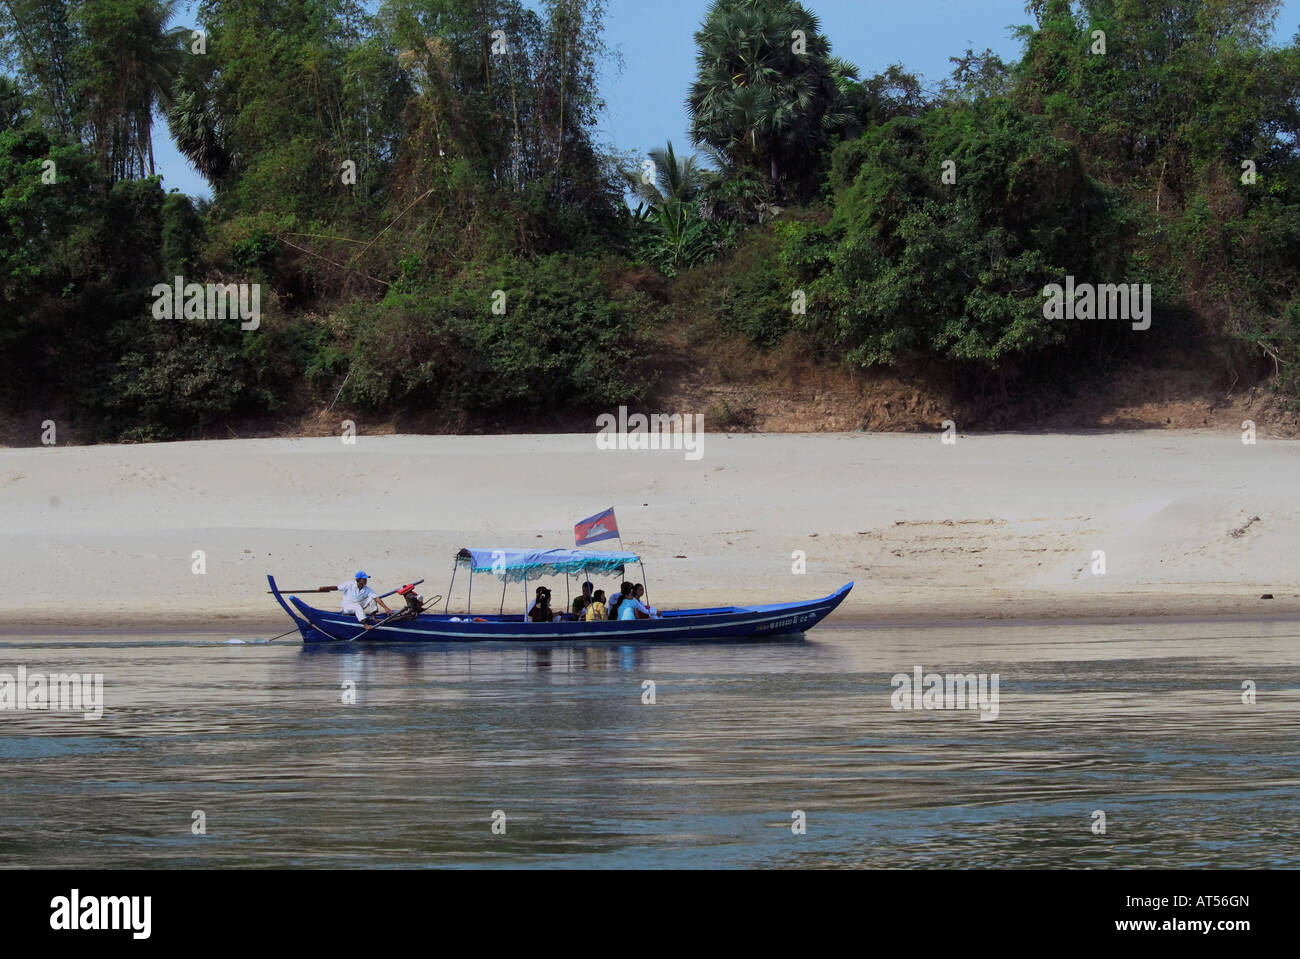 Dolphin watching boat on River Mekong at Kampi,Kratie,Cambodia - Stock Image